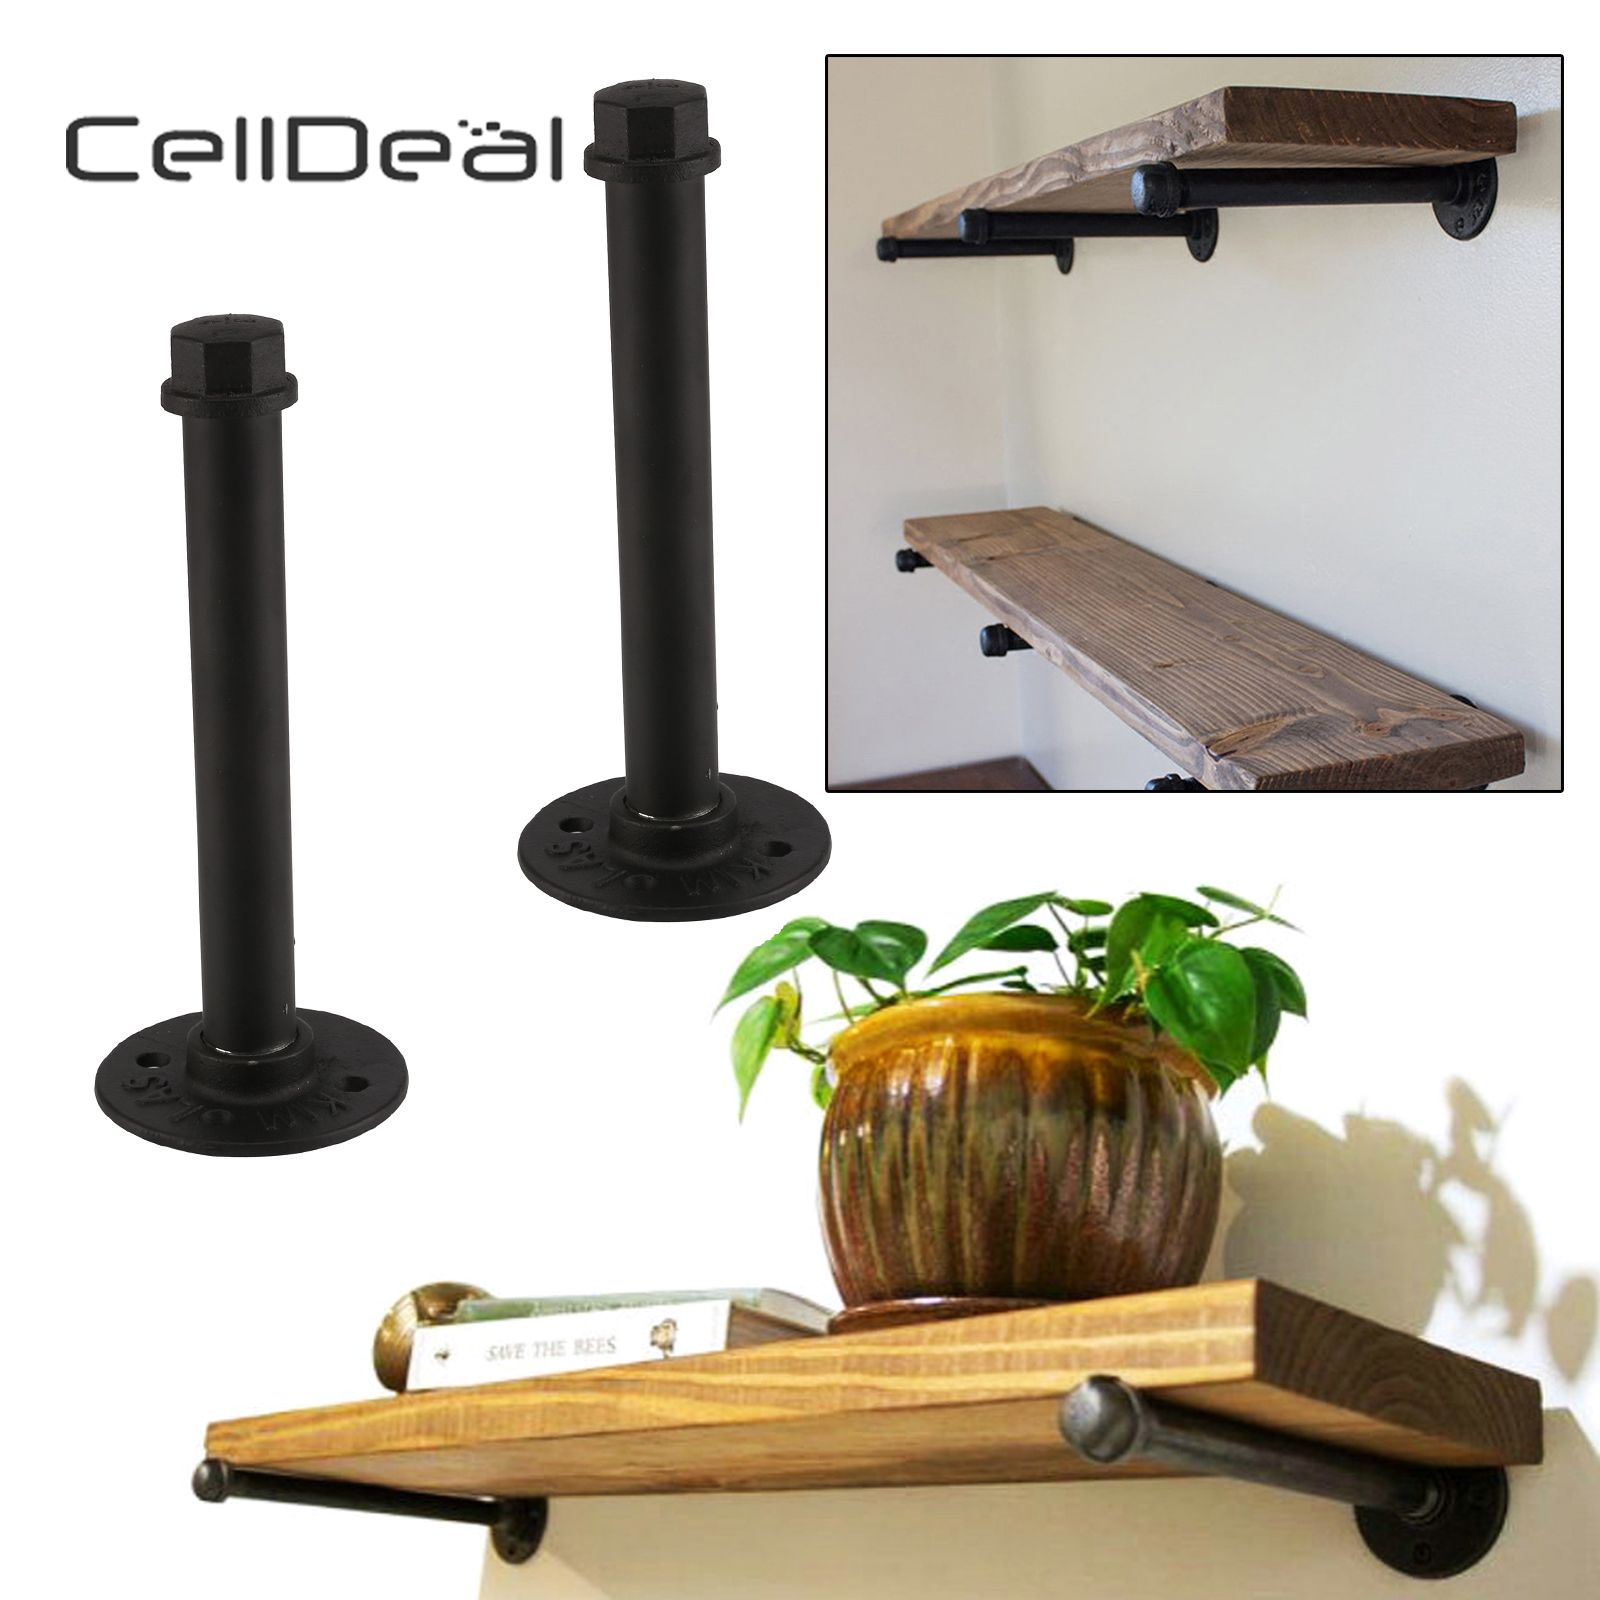 Pair of Industrial Pipe Bracket Heavy Iron Shelf Support Set Durable Flange Industrial Shelves Stand Up Desk Shelf Wood MetalPair of Industrial Pipe Bracket Heavy Iron Shelf Support Set Durable Flange Industrial Shelves Stand Up Desk Shelf Wood Metal